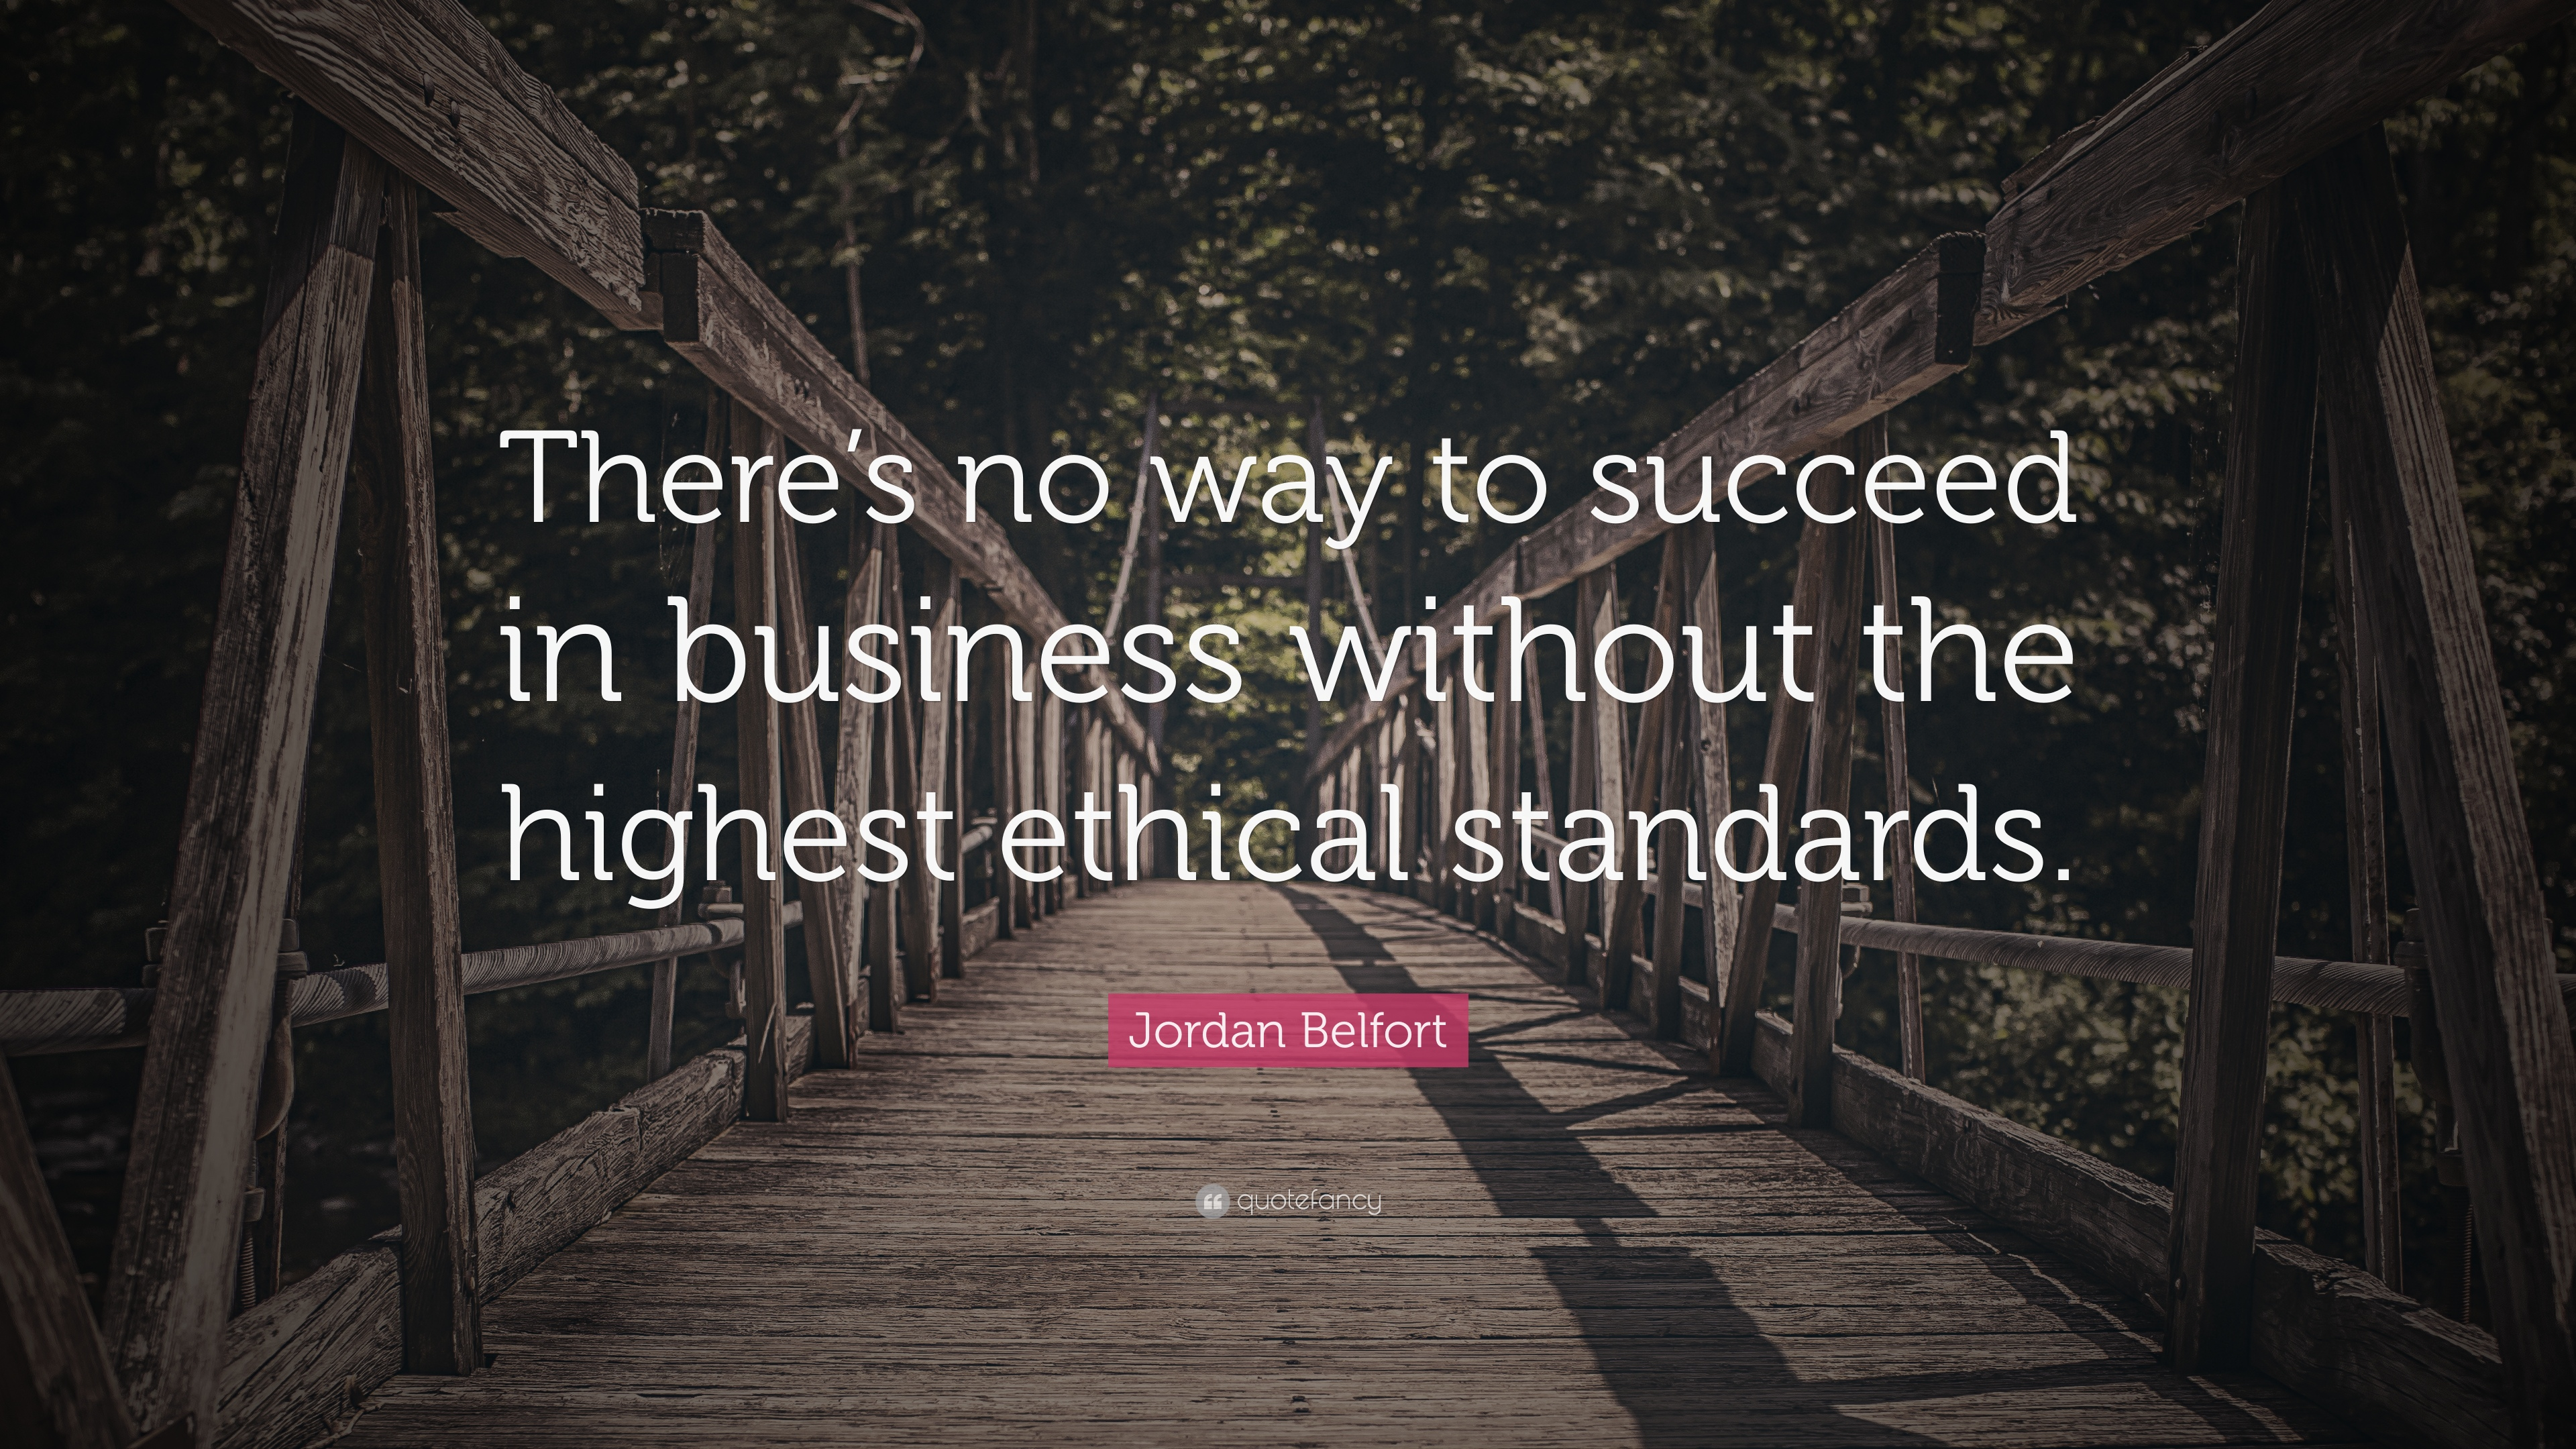 Jordan Belfort Quote There S No Way To Succeed In Business Without The Highest Ethical